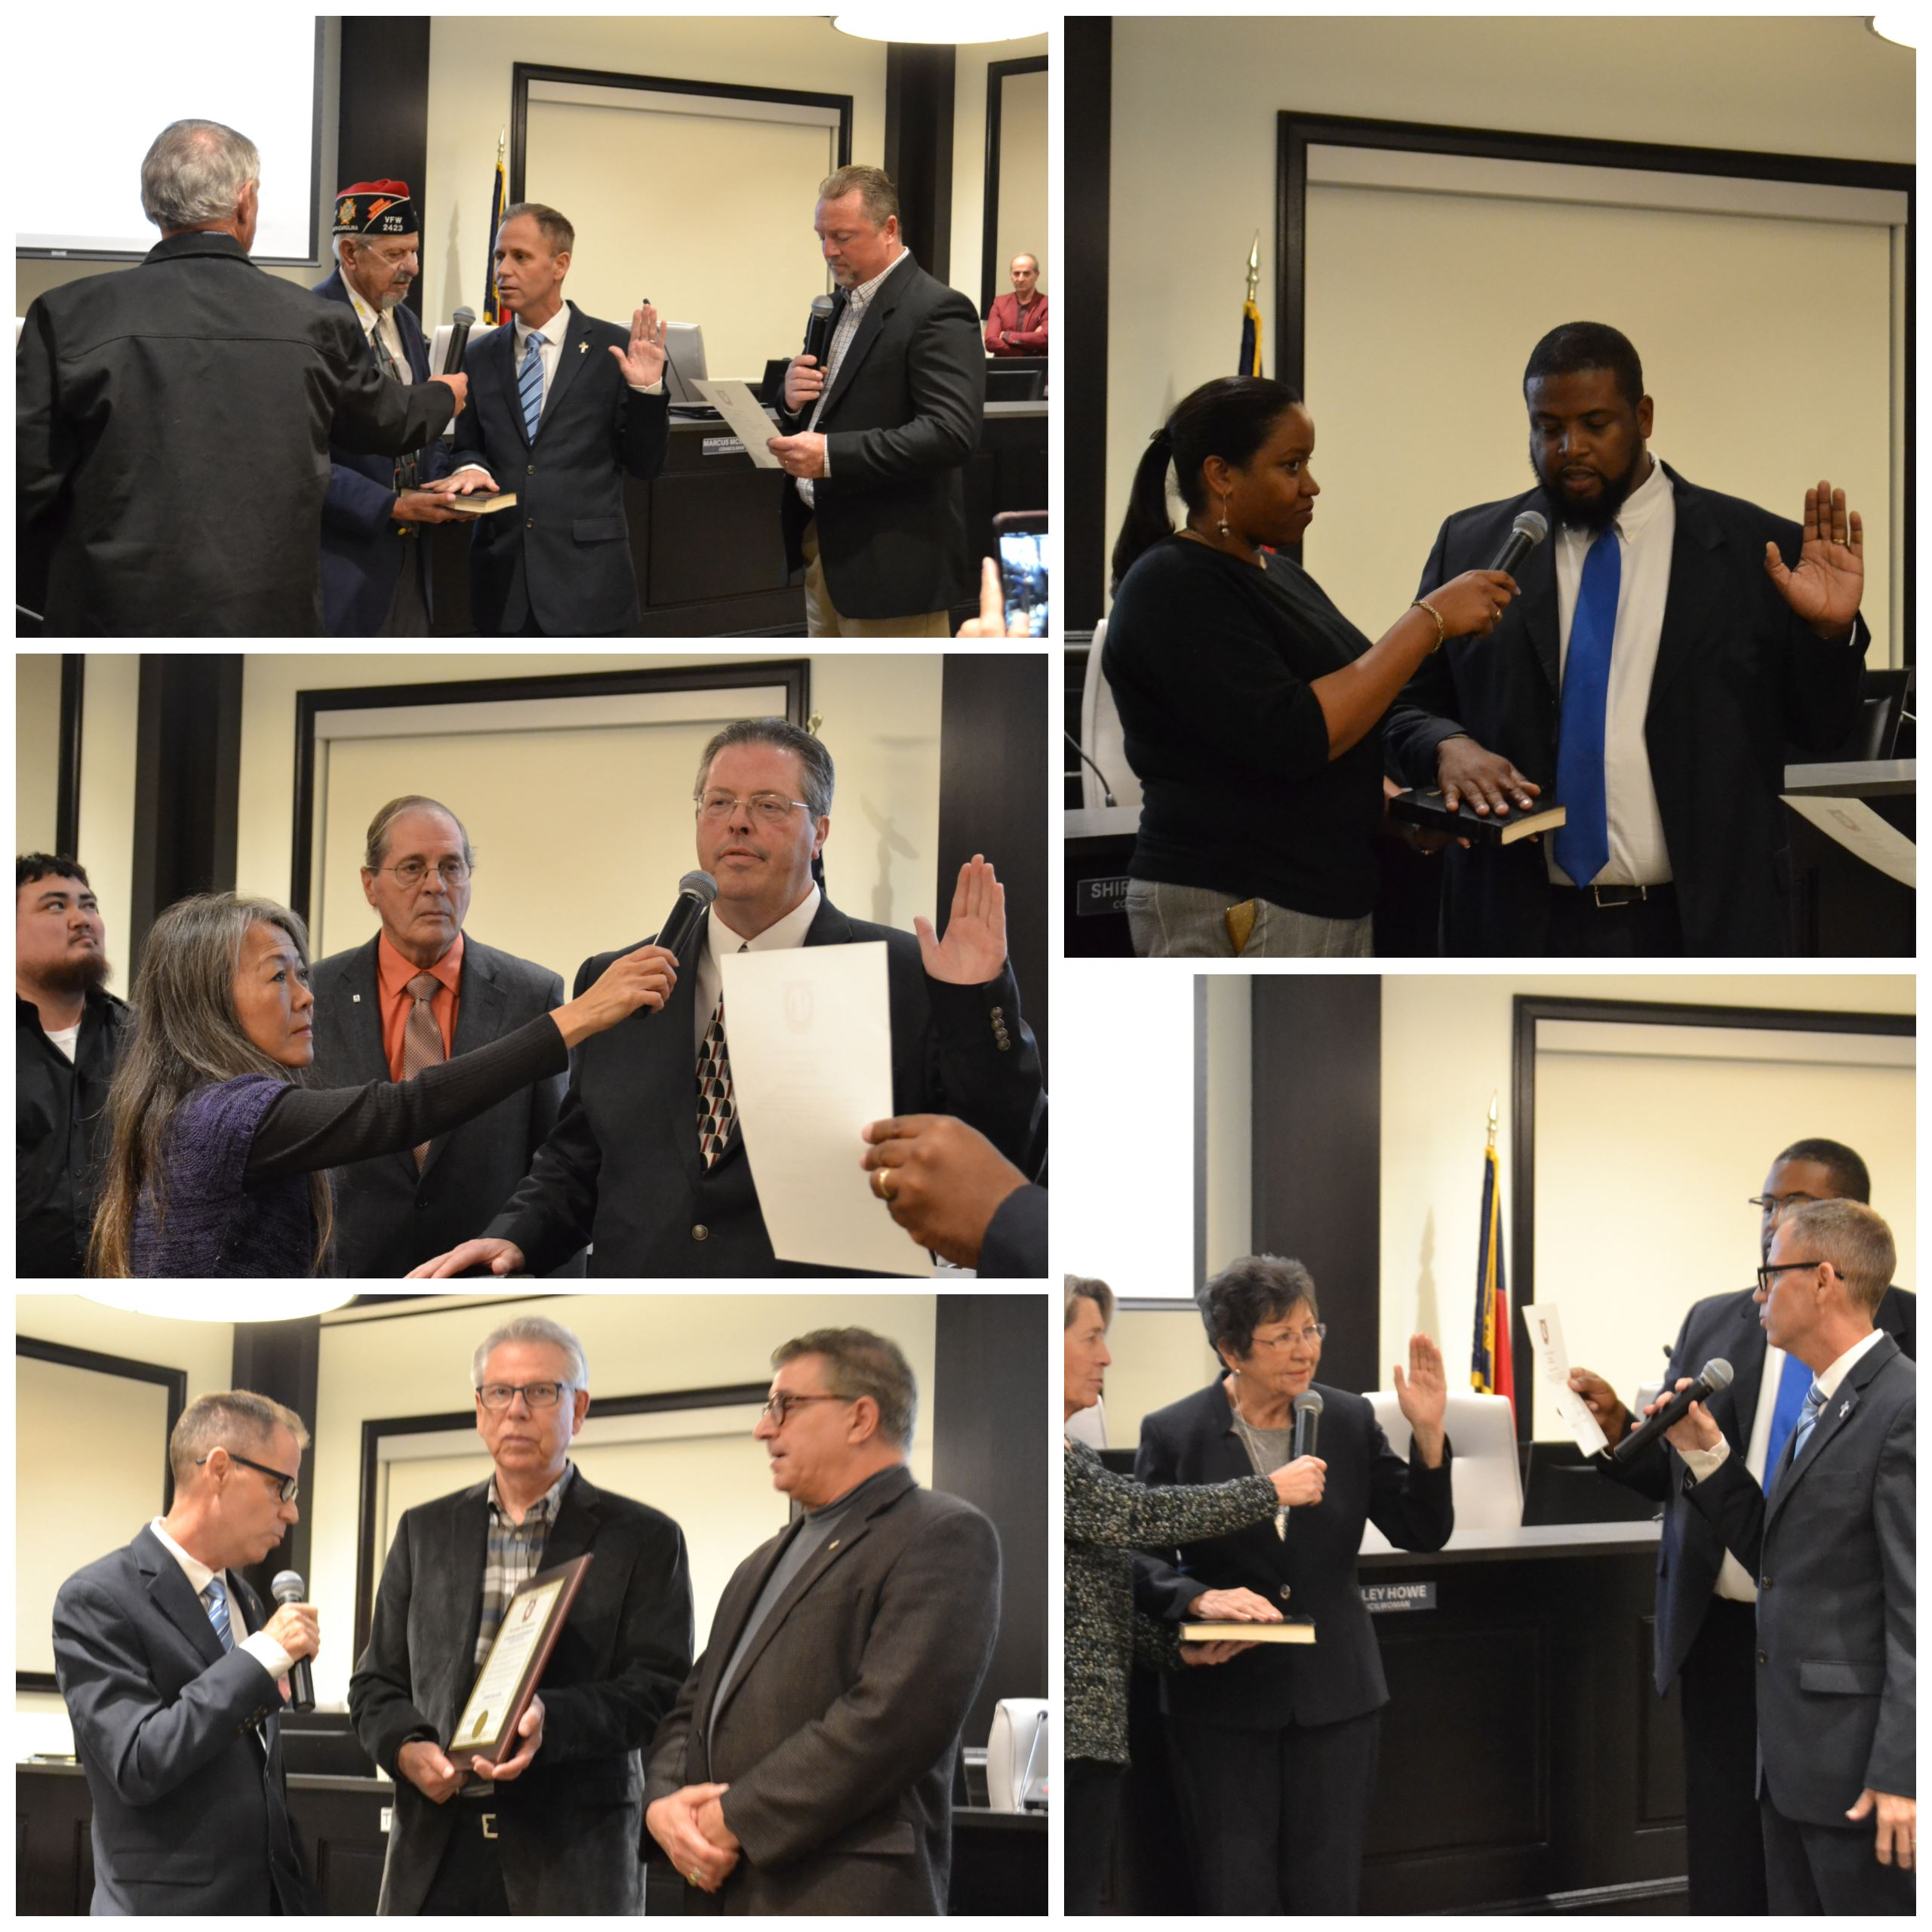 Council Swearing-In Photos